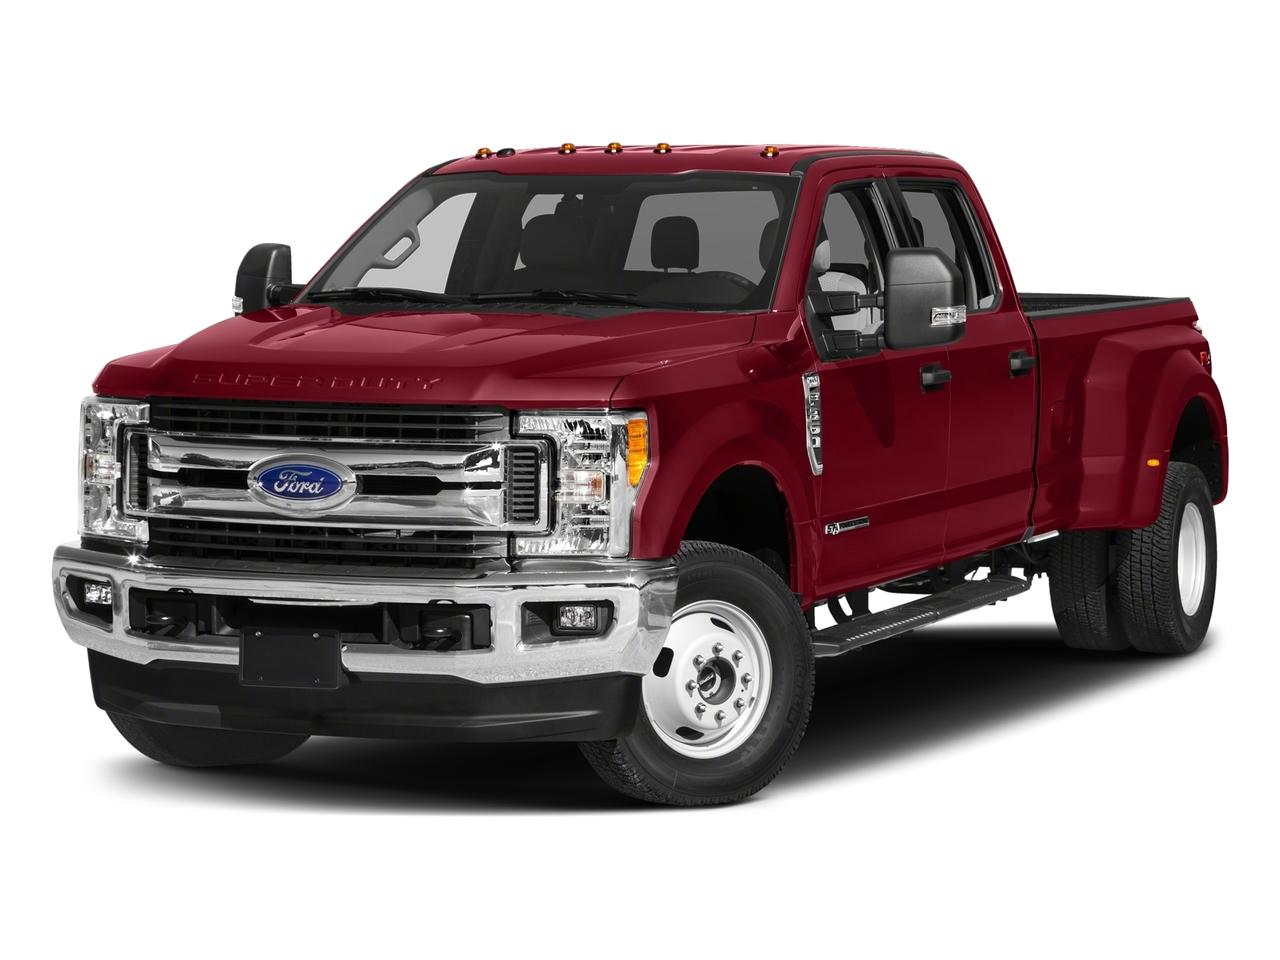 2017 Ford Super Duty F-350 DRW Vehicle Photo in PORTLAND, OR 97225-3518